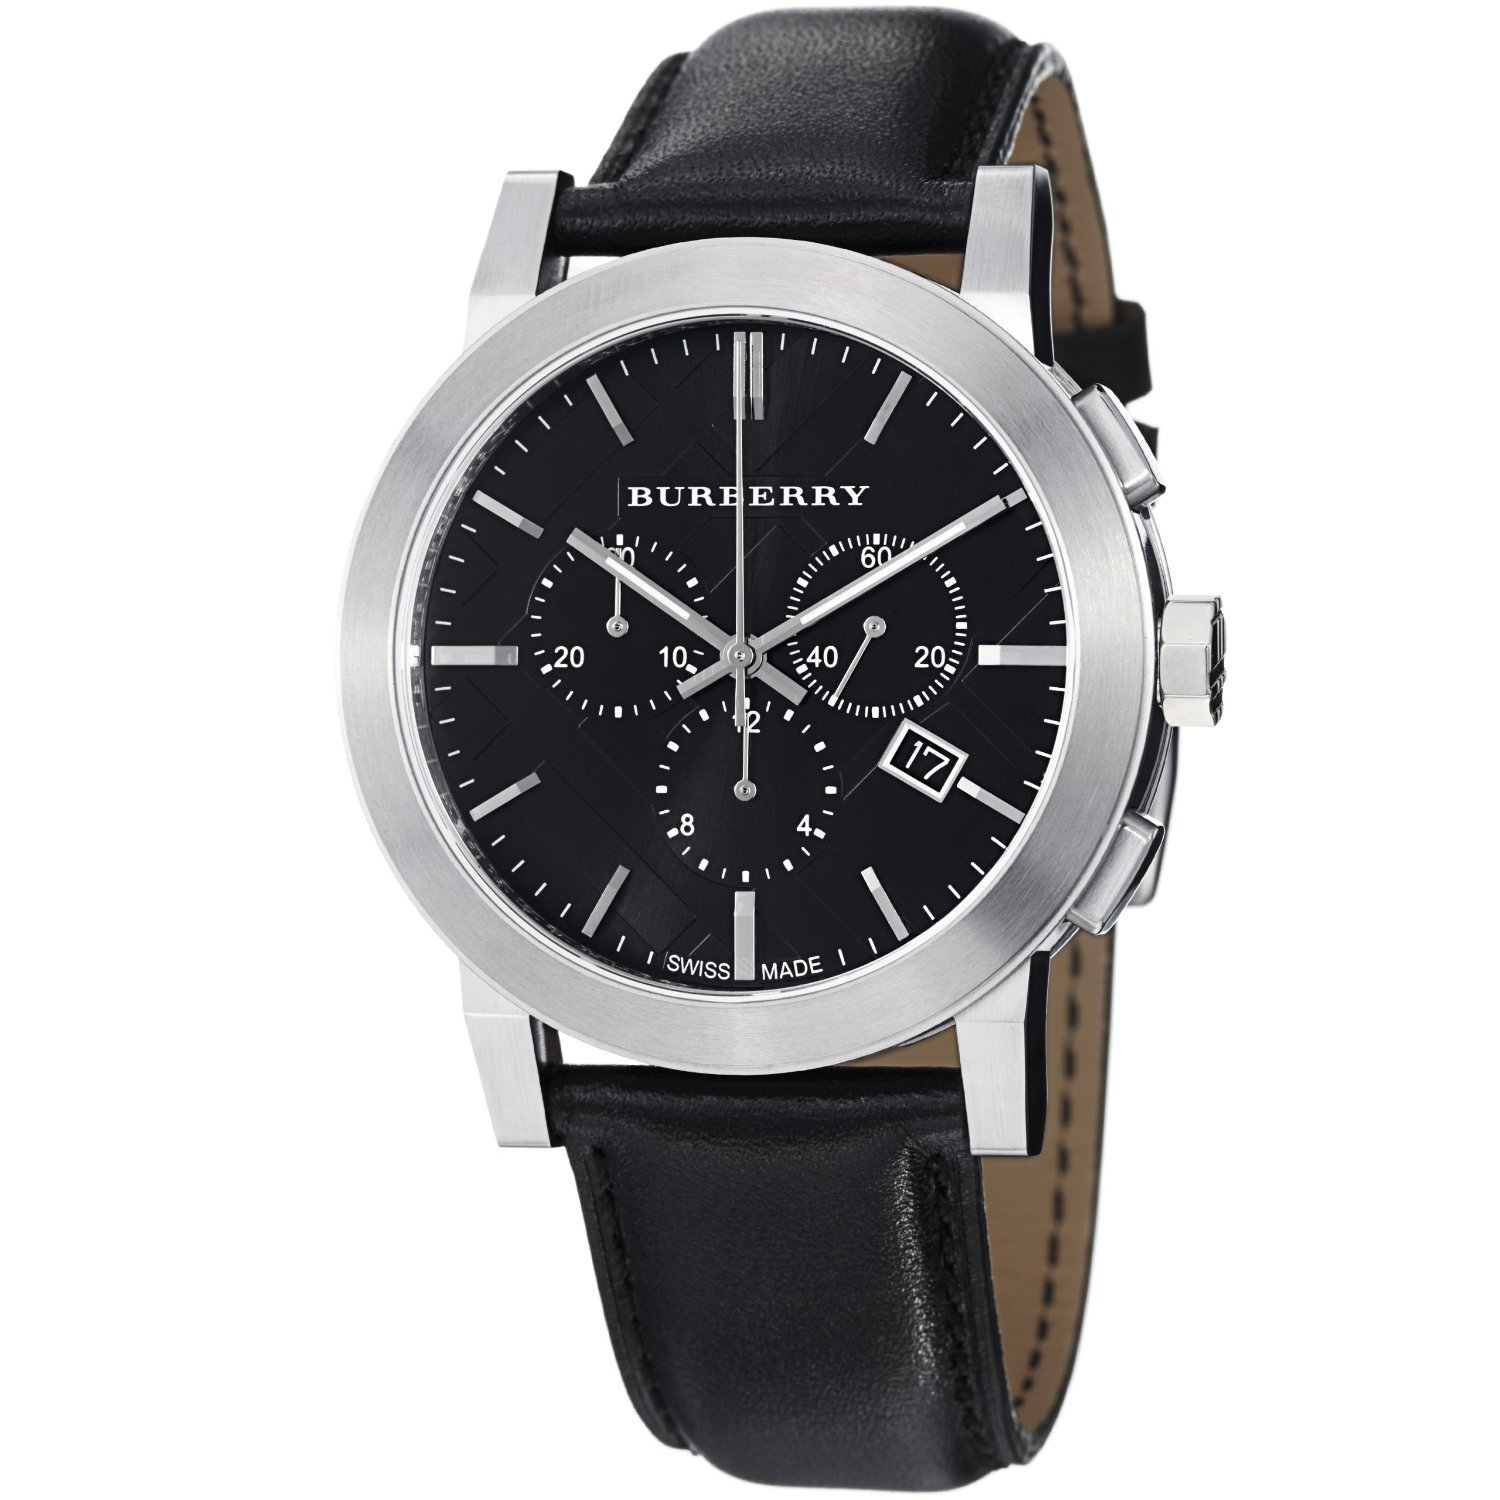 Burberry bu9356 stainless steel leather anti reflective men 39 s watch for Burberry watches